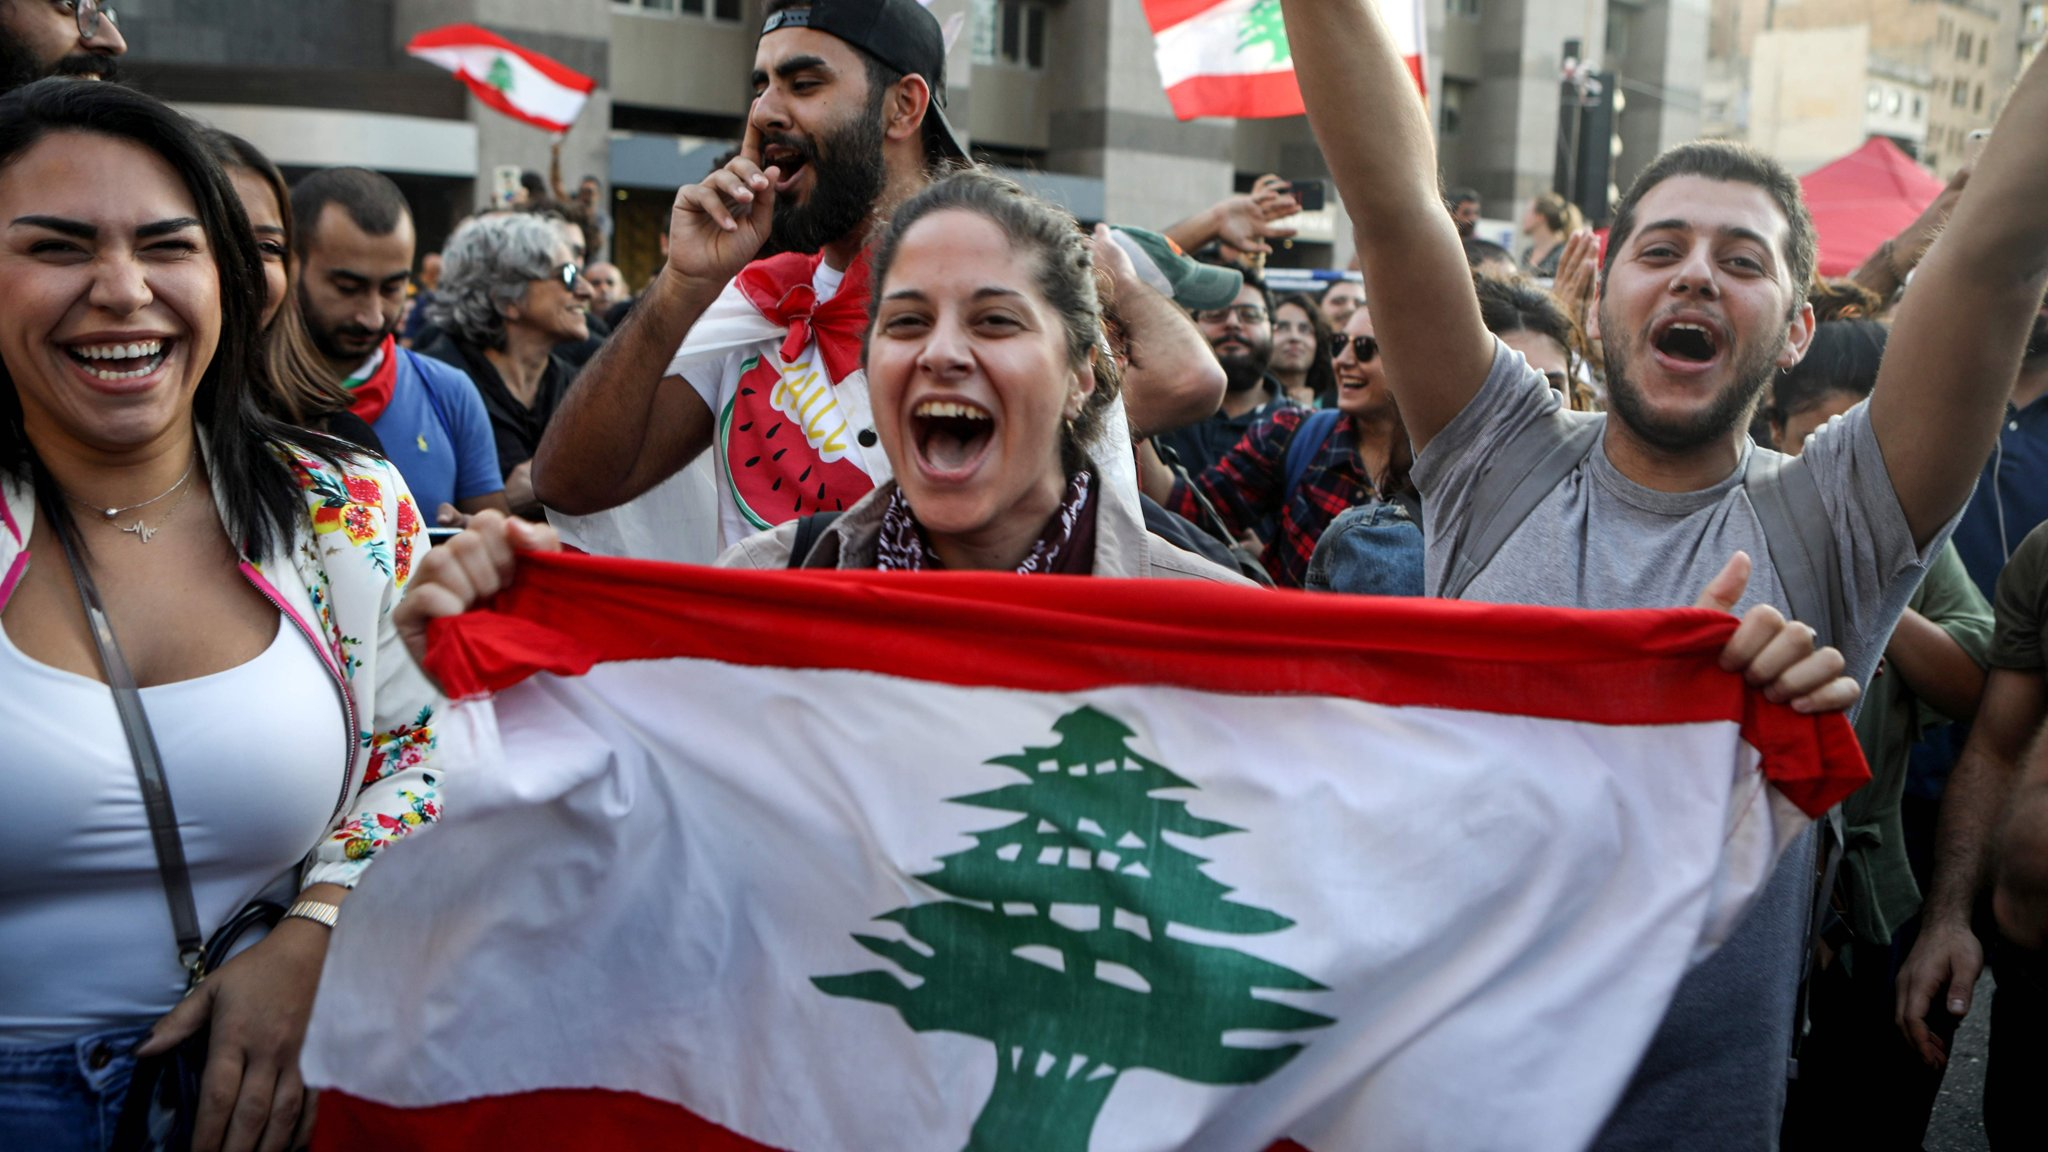 Lebanon's creditors adopt crash position as default risk worsens